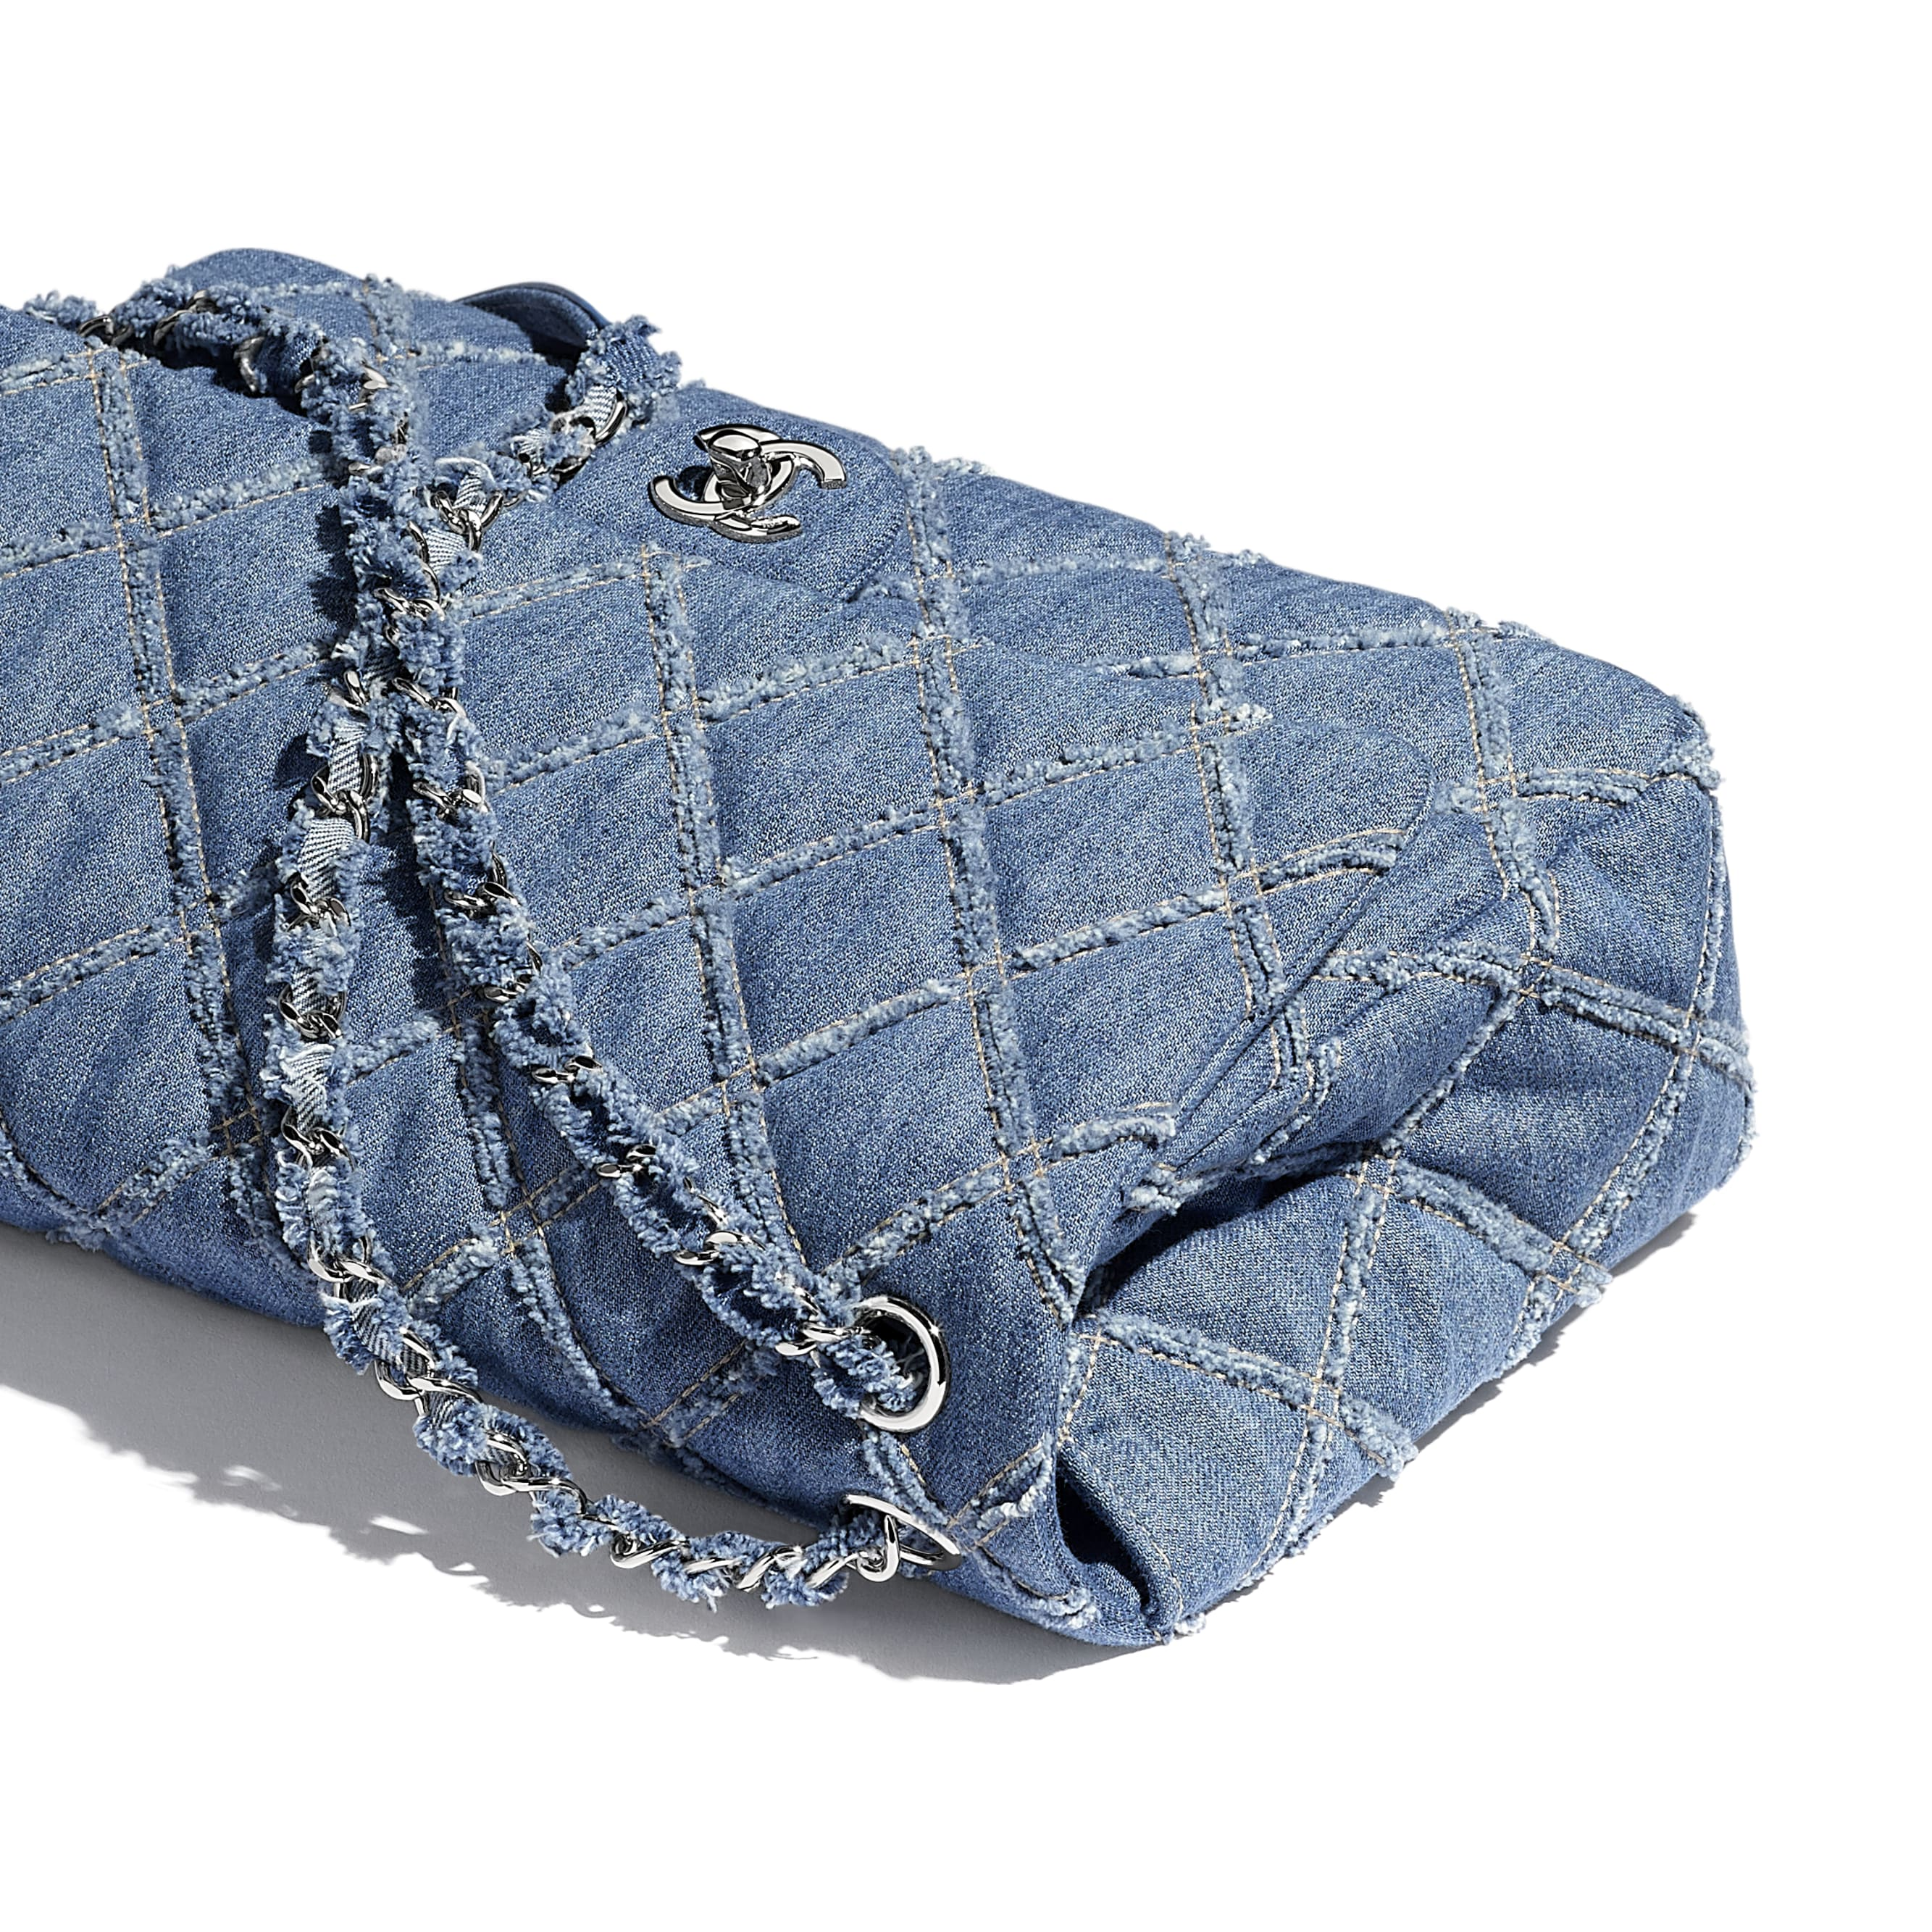 Large Flap Bag - Blue - Denim & Silver-Tone Metal - CHANEL - Extra view - see standard sized version